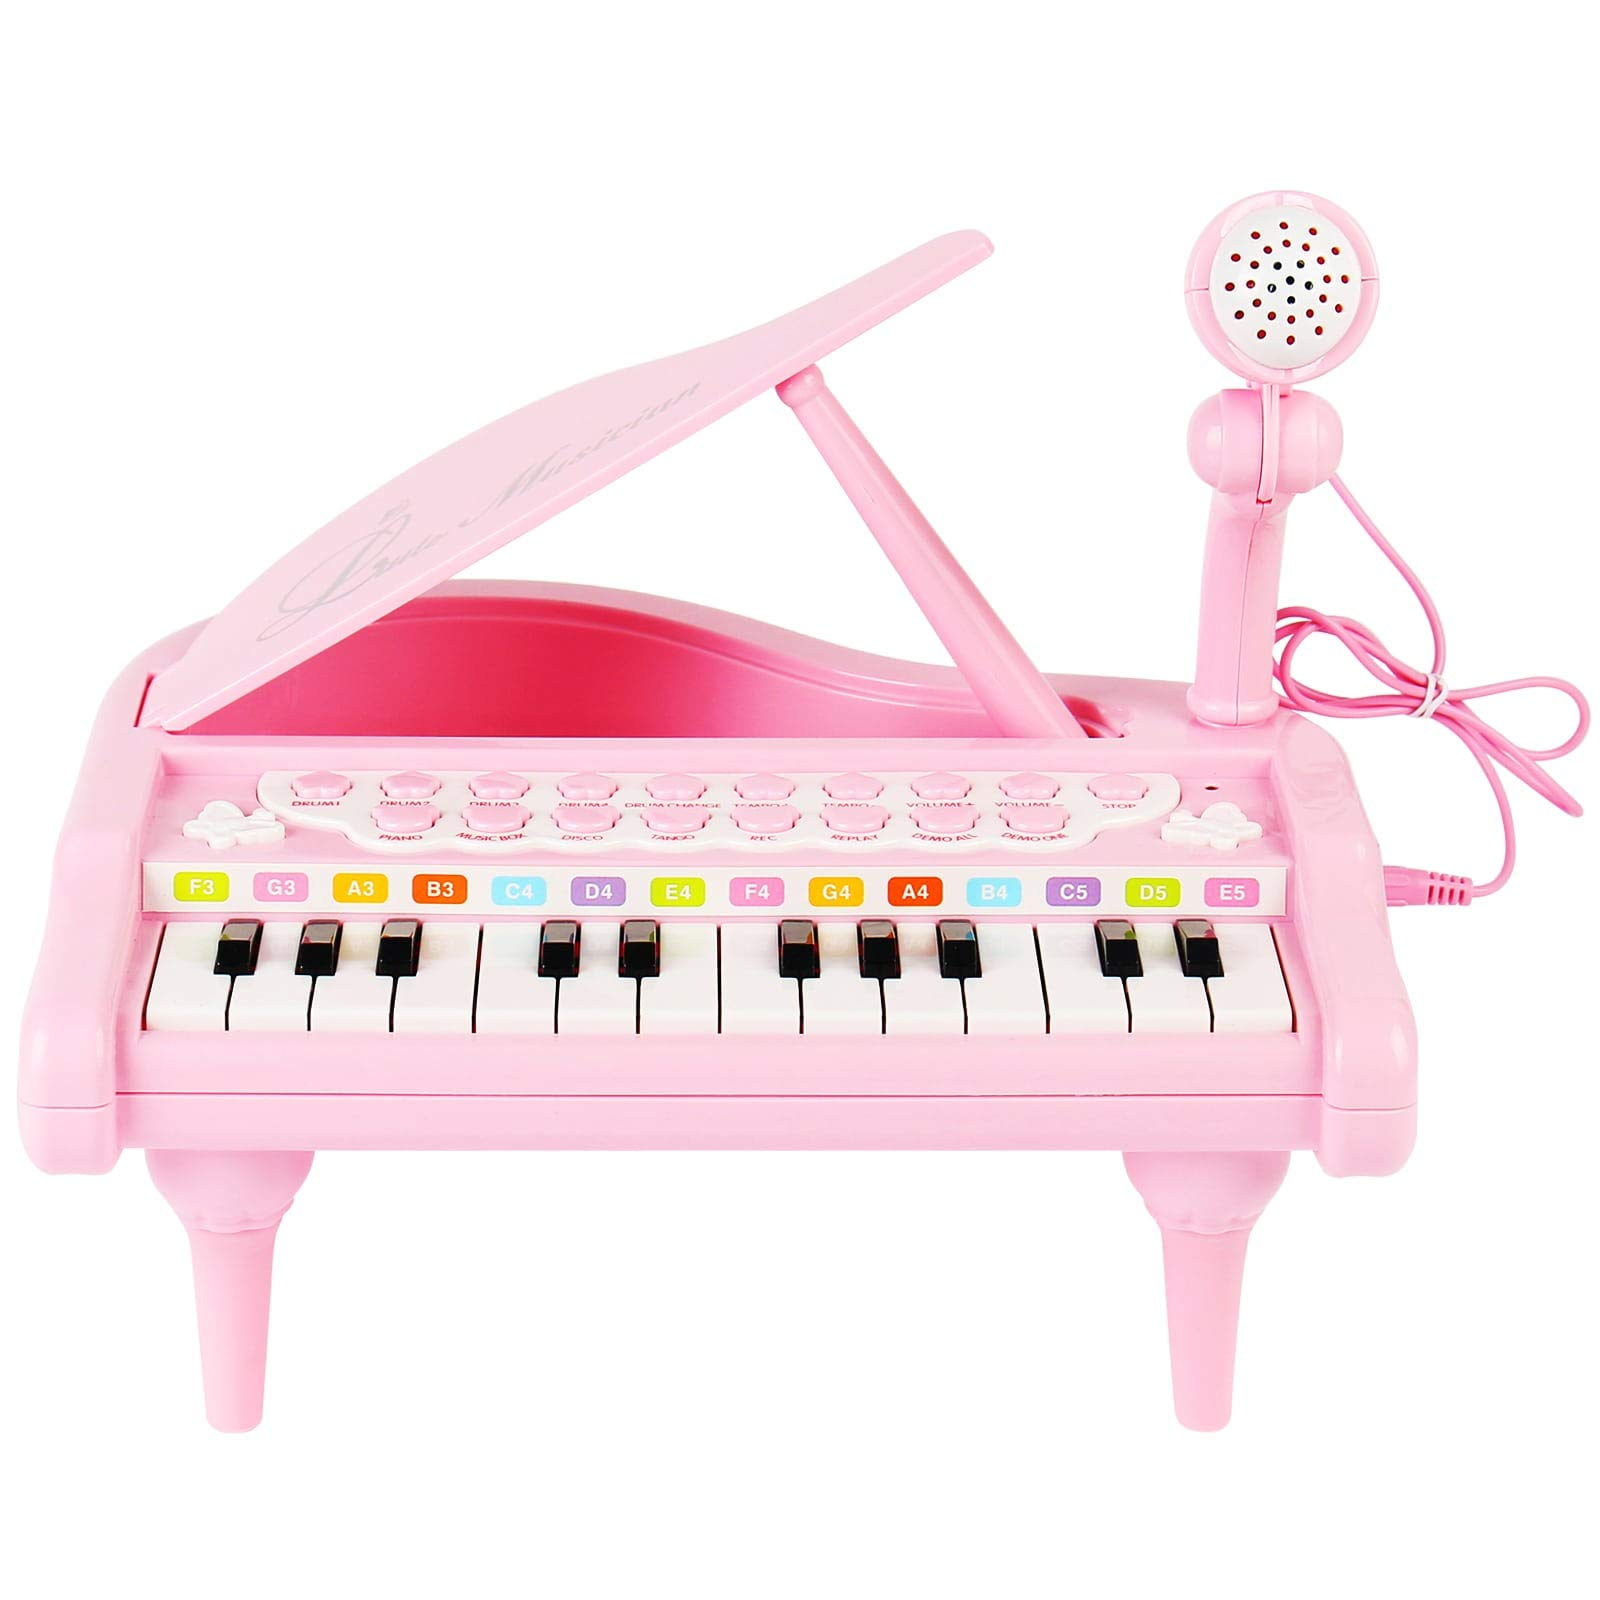 ConoMus Piano Keyboard Toy for Kids,1 2 3 4 Year Old Girls First Birthday Gift , 24 Keys Multifunctional Musical Electronic Toy Piano for Toddlers by Conomus